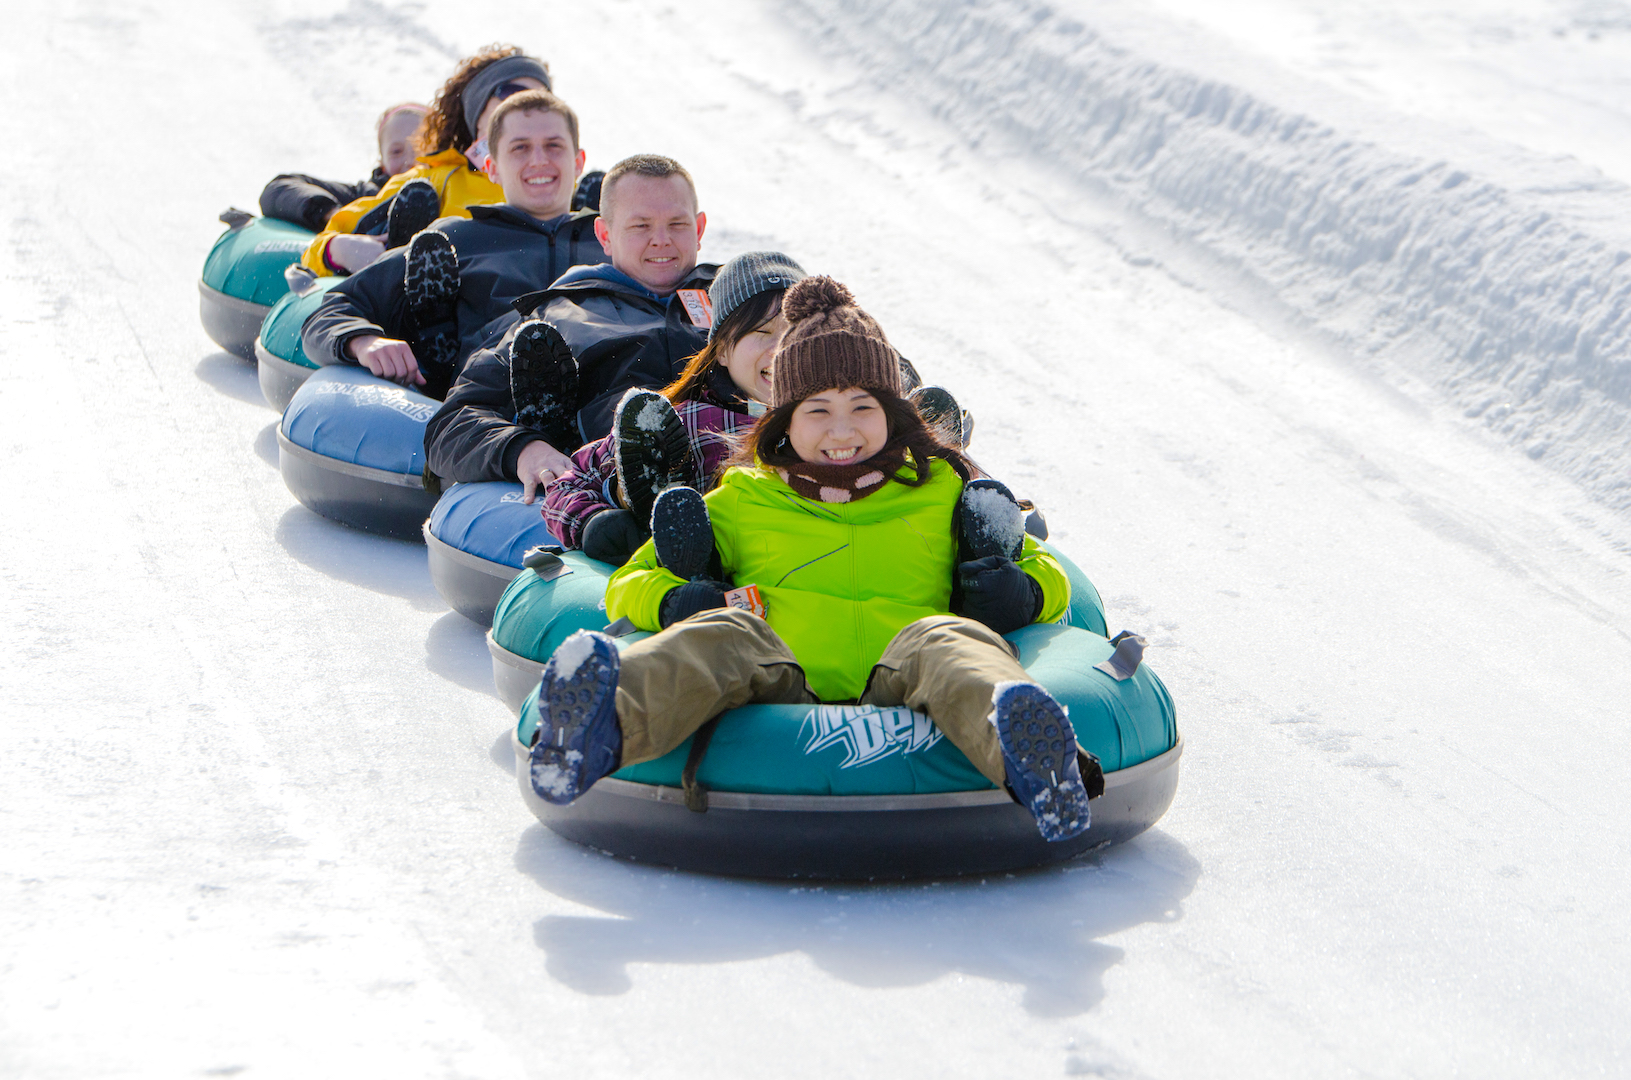 Snow Tubing with Friends at Snow Trails Vertical Descent Tubing Park #SnowTrailsOH